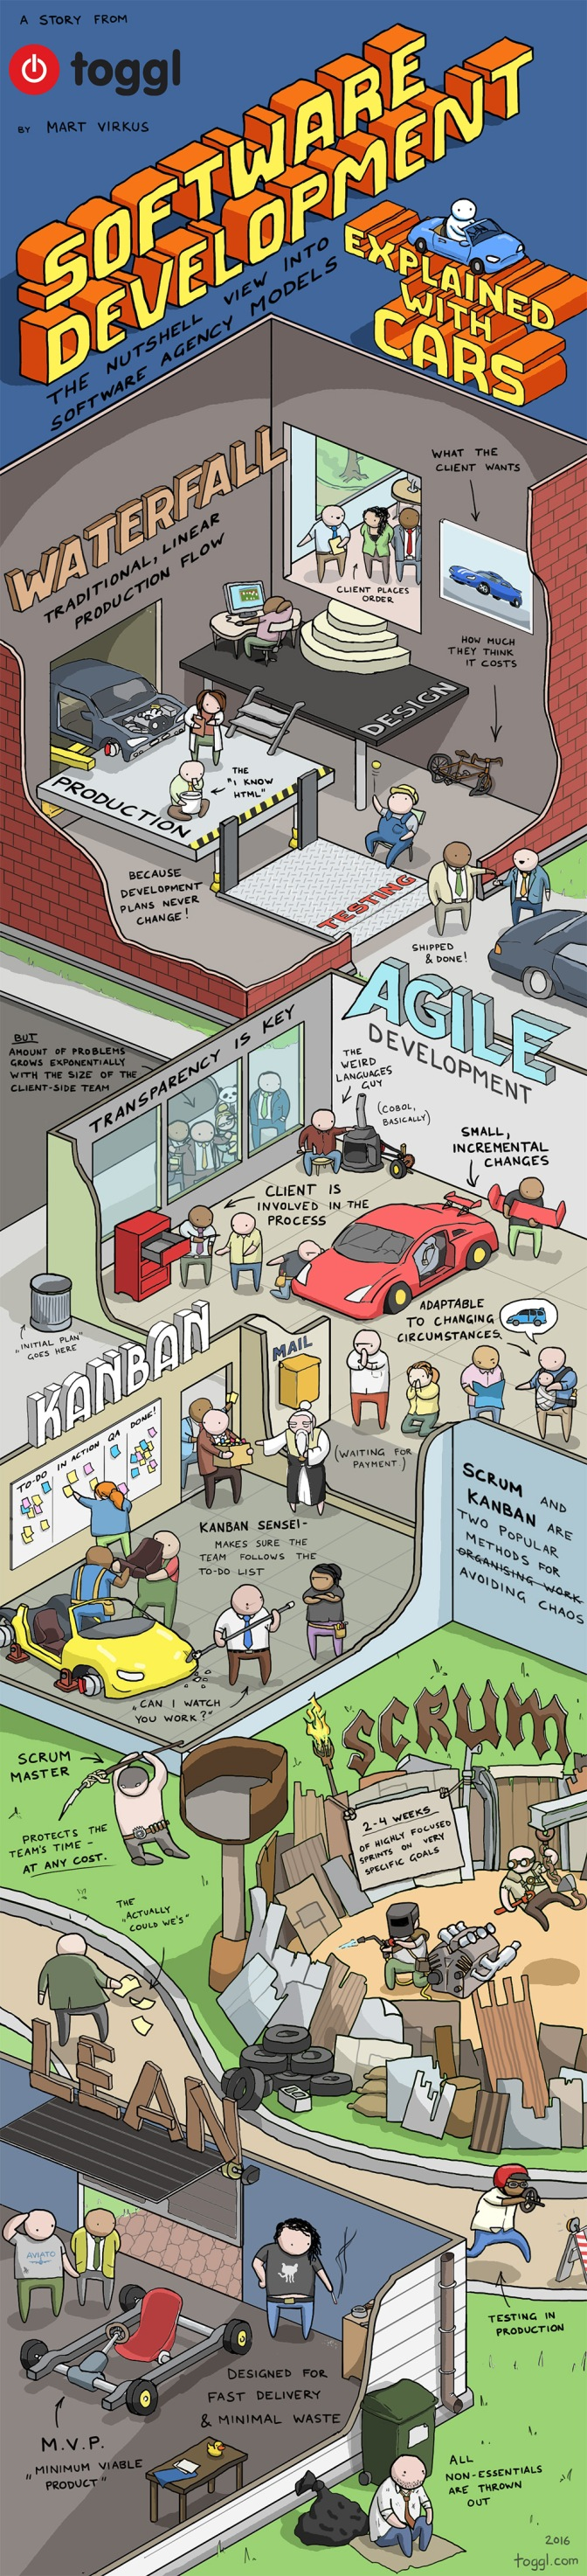 software-development-methods-explained-with-cars-toggl-infographic-02-f2f4bdec9eeed1a4d20b6b4f0ce9b3b7